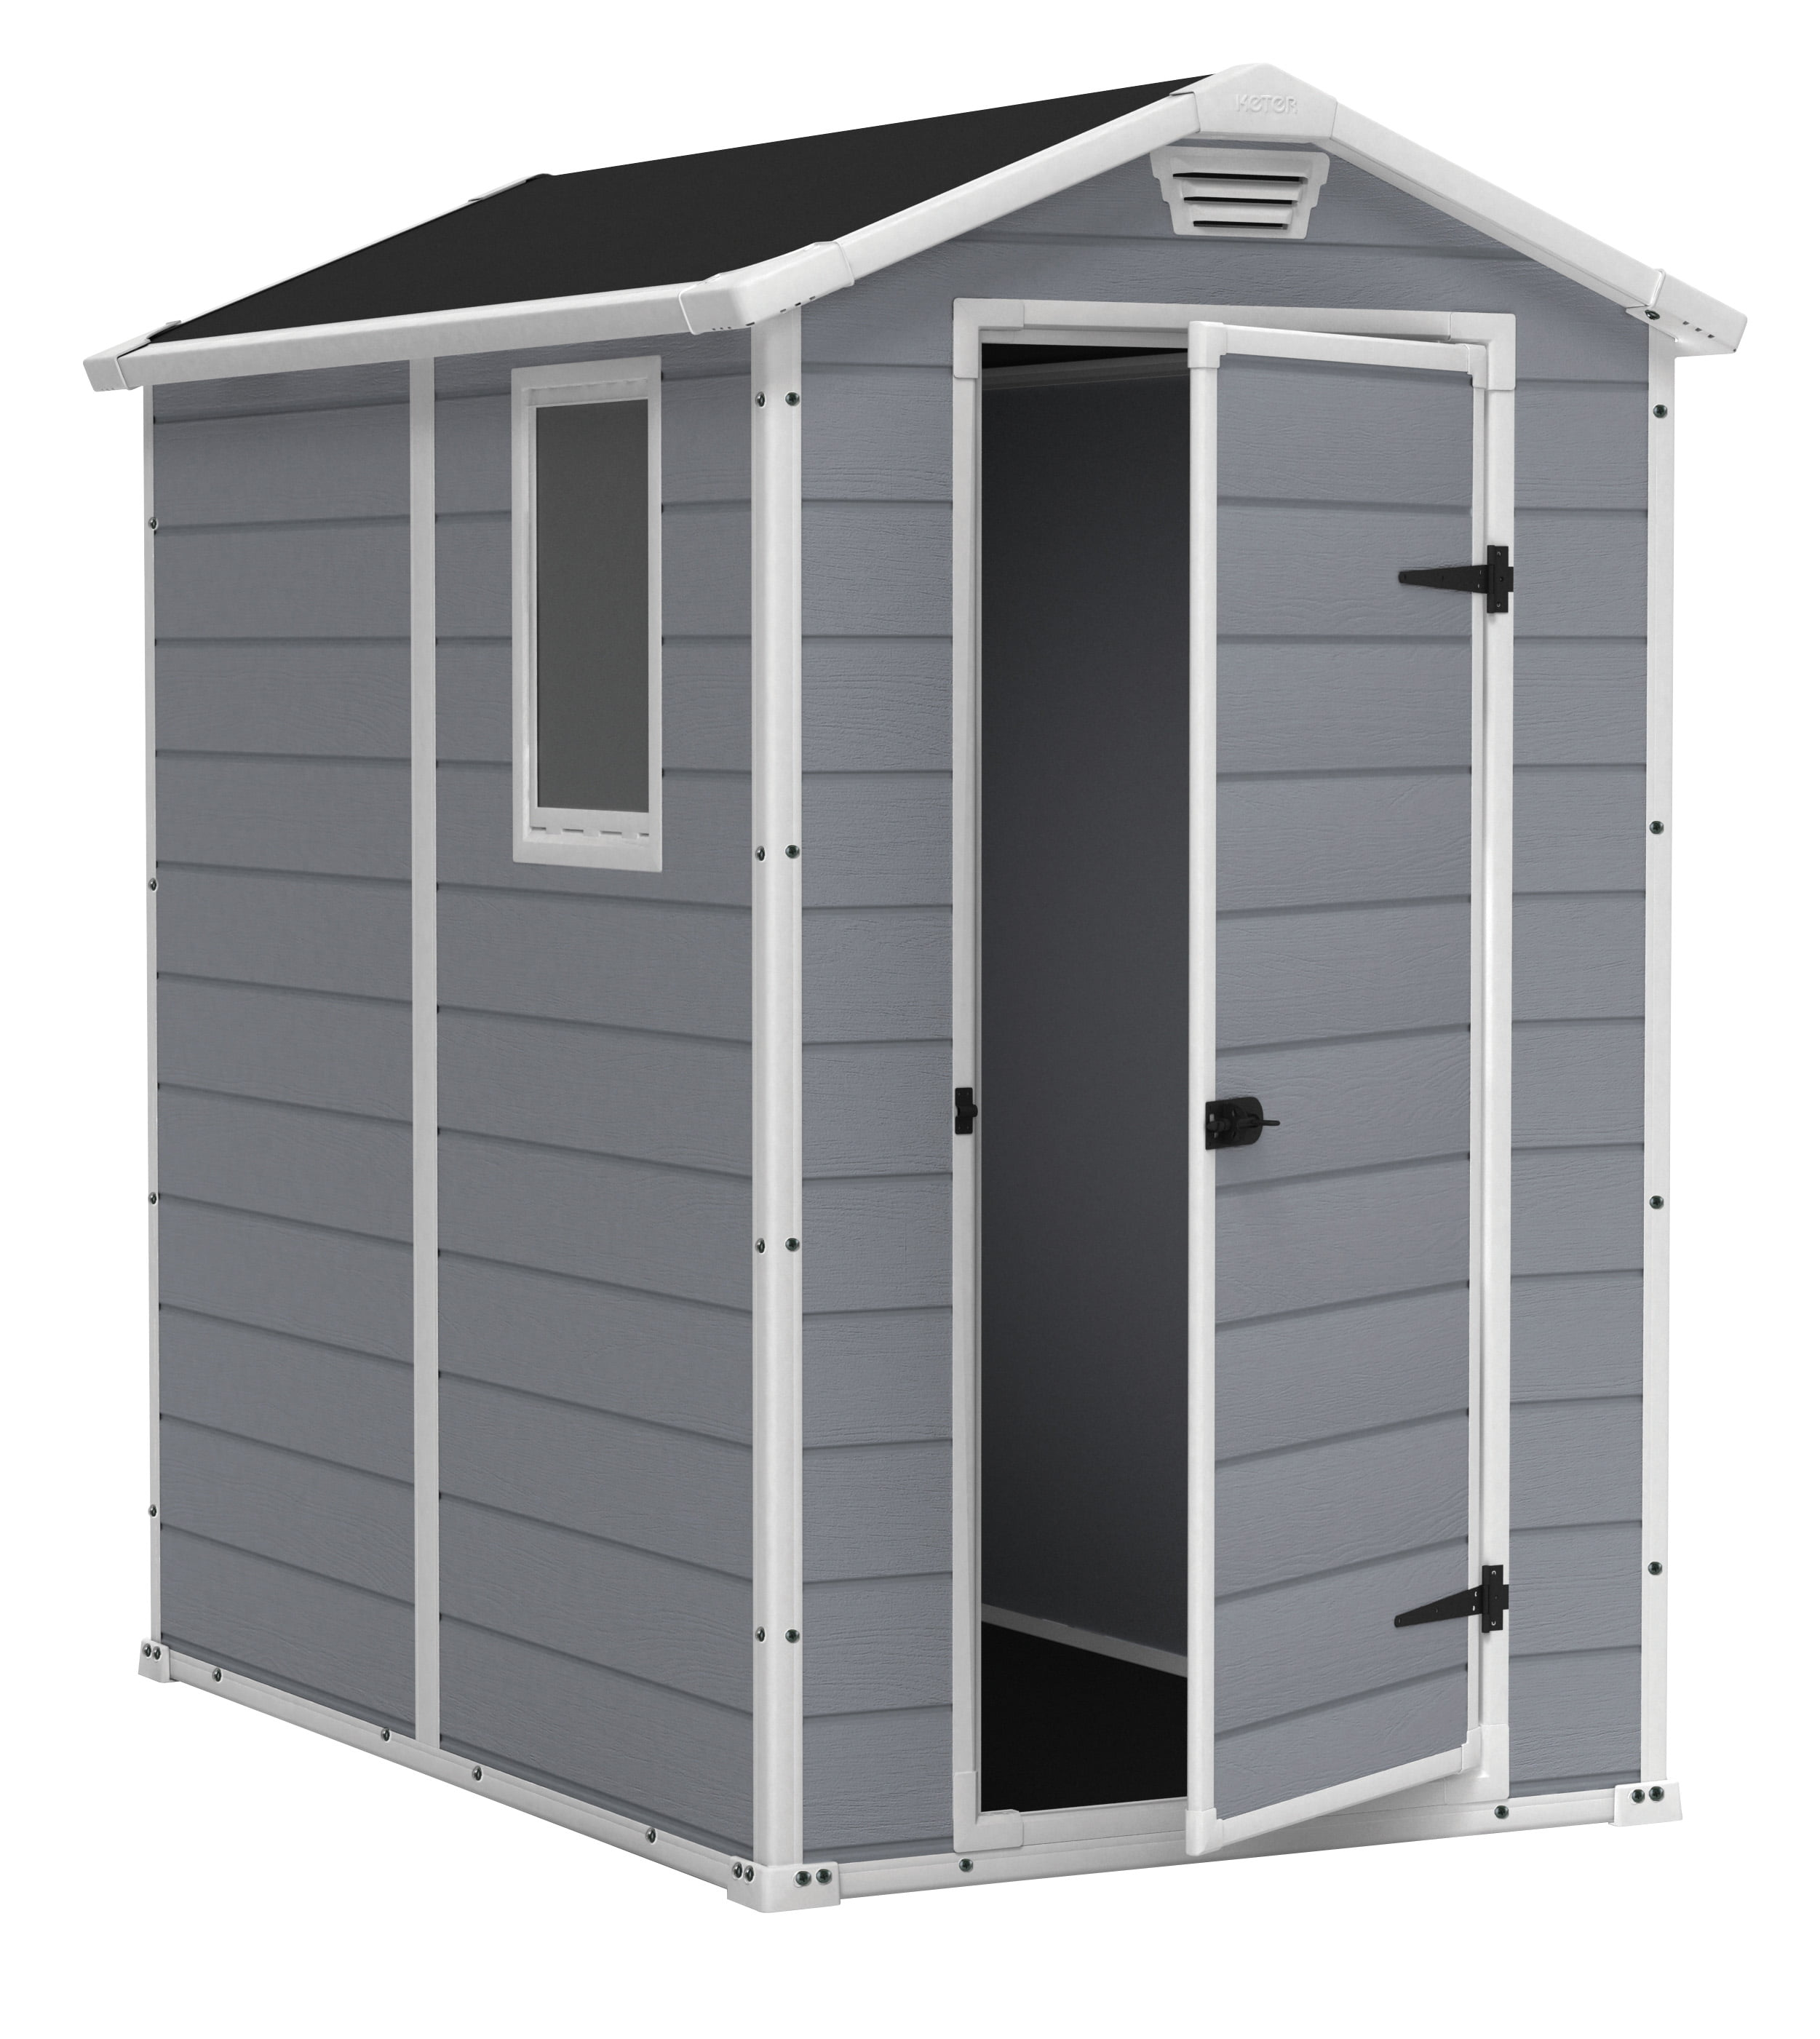 rruuwyrh in banner cheap buildings metal steel shed sheds carports florida storage